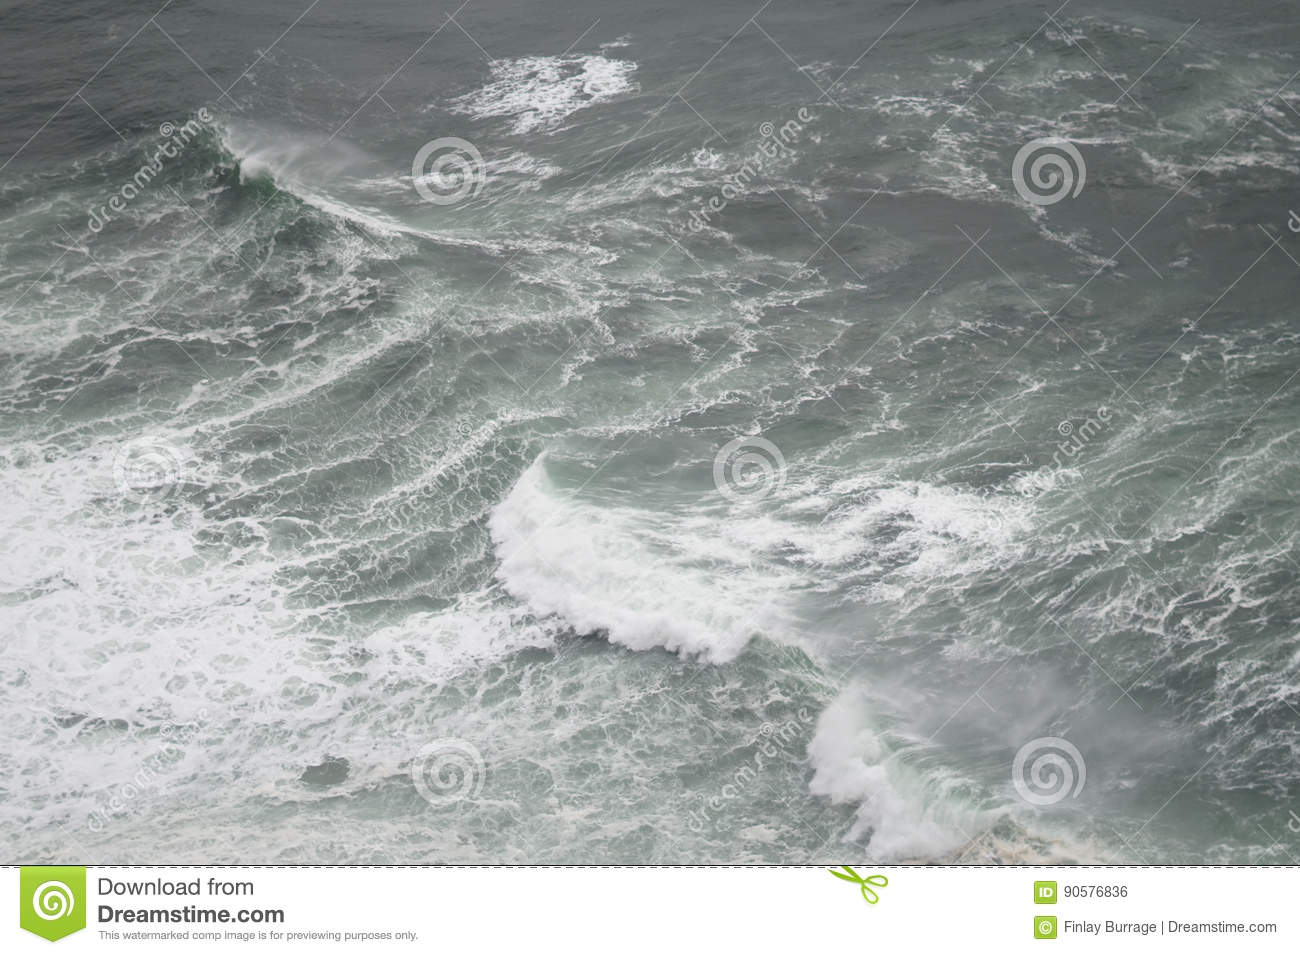 A View Of The Ocean From Above Perfect As Simple Aesthetic Image Or Background